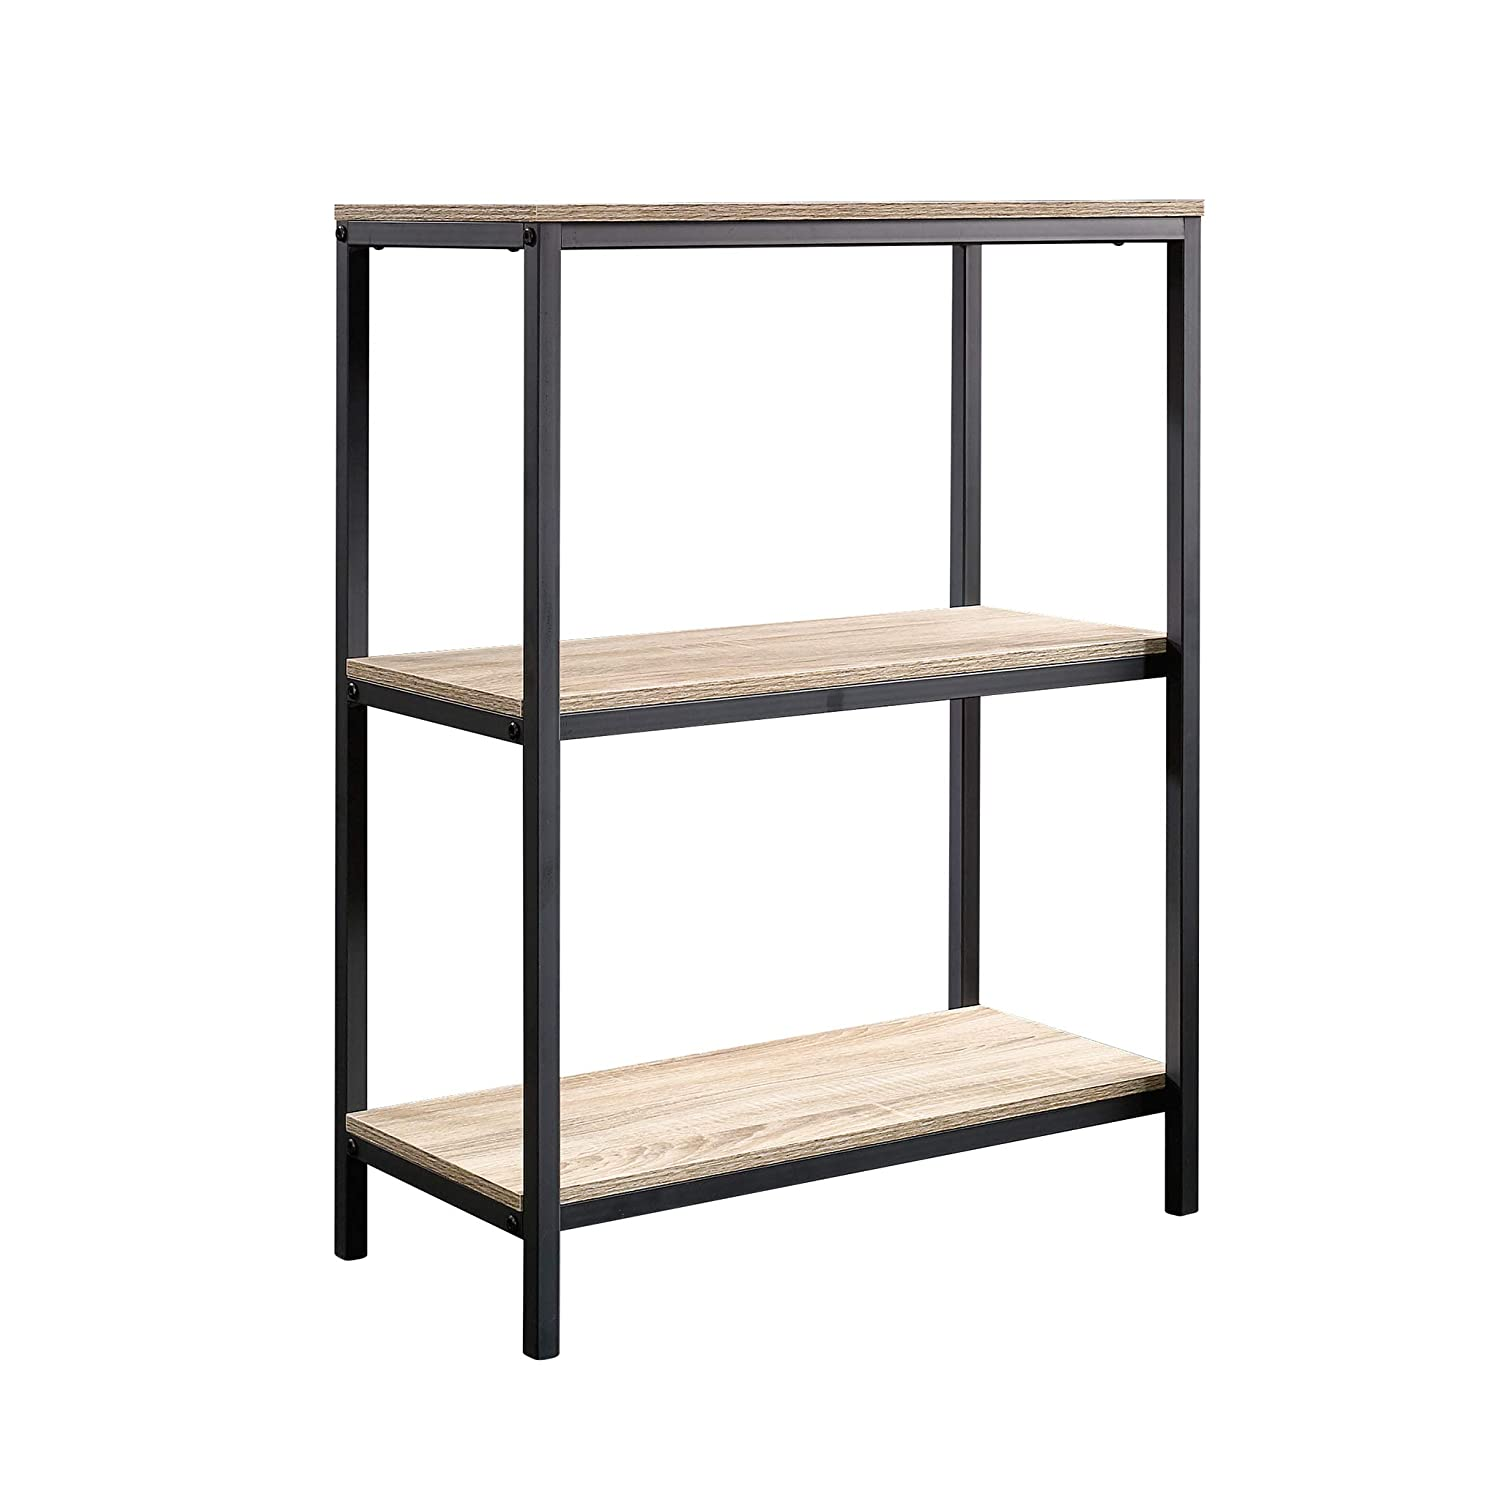 Sauder 420276 Bookcases, Furniture North Avenue, Characters Oak Sauder Woodworking